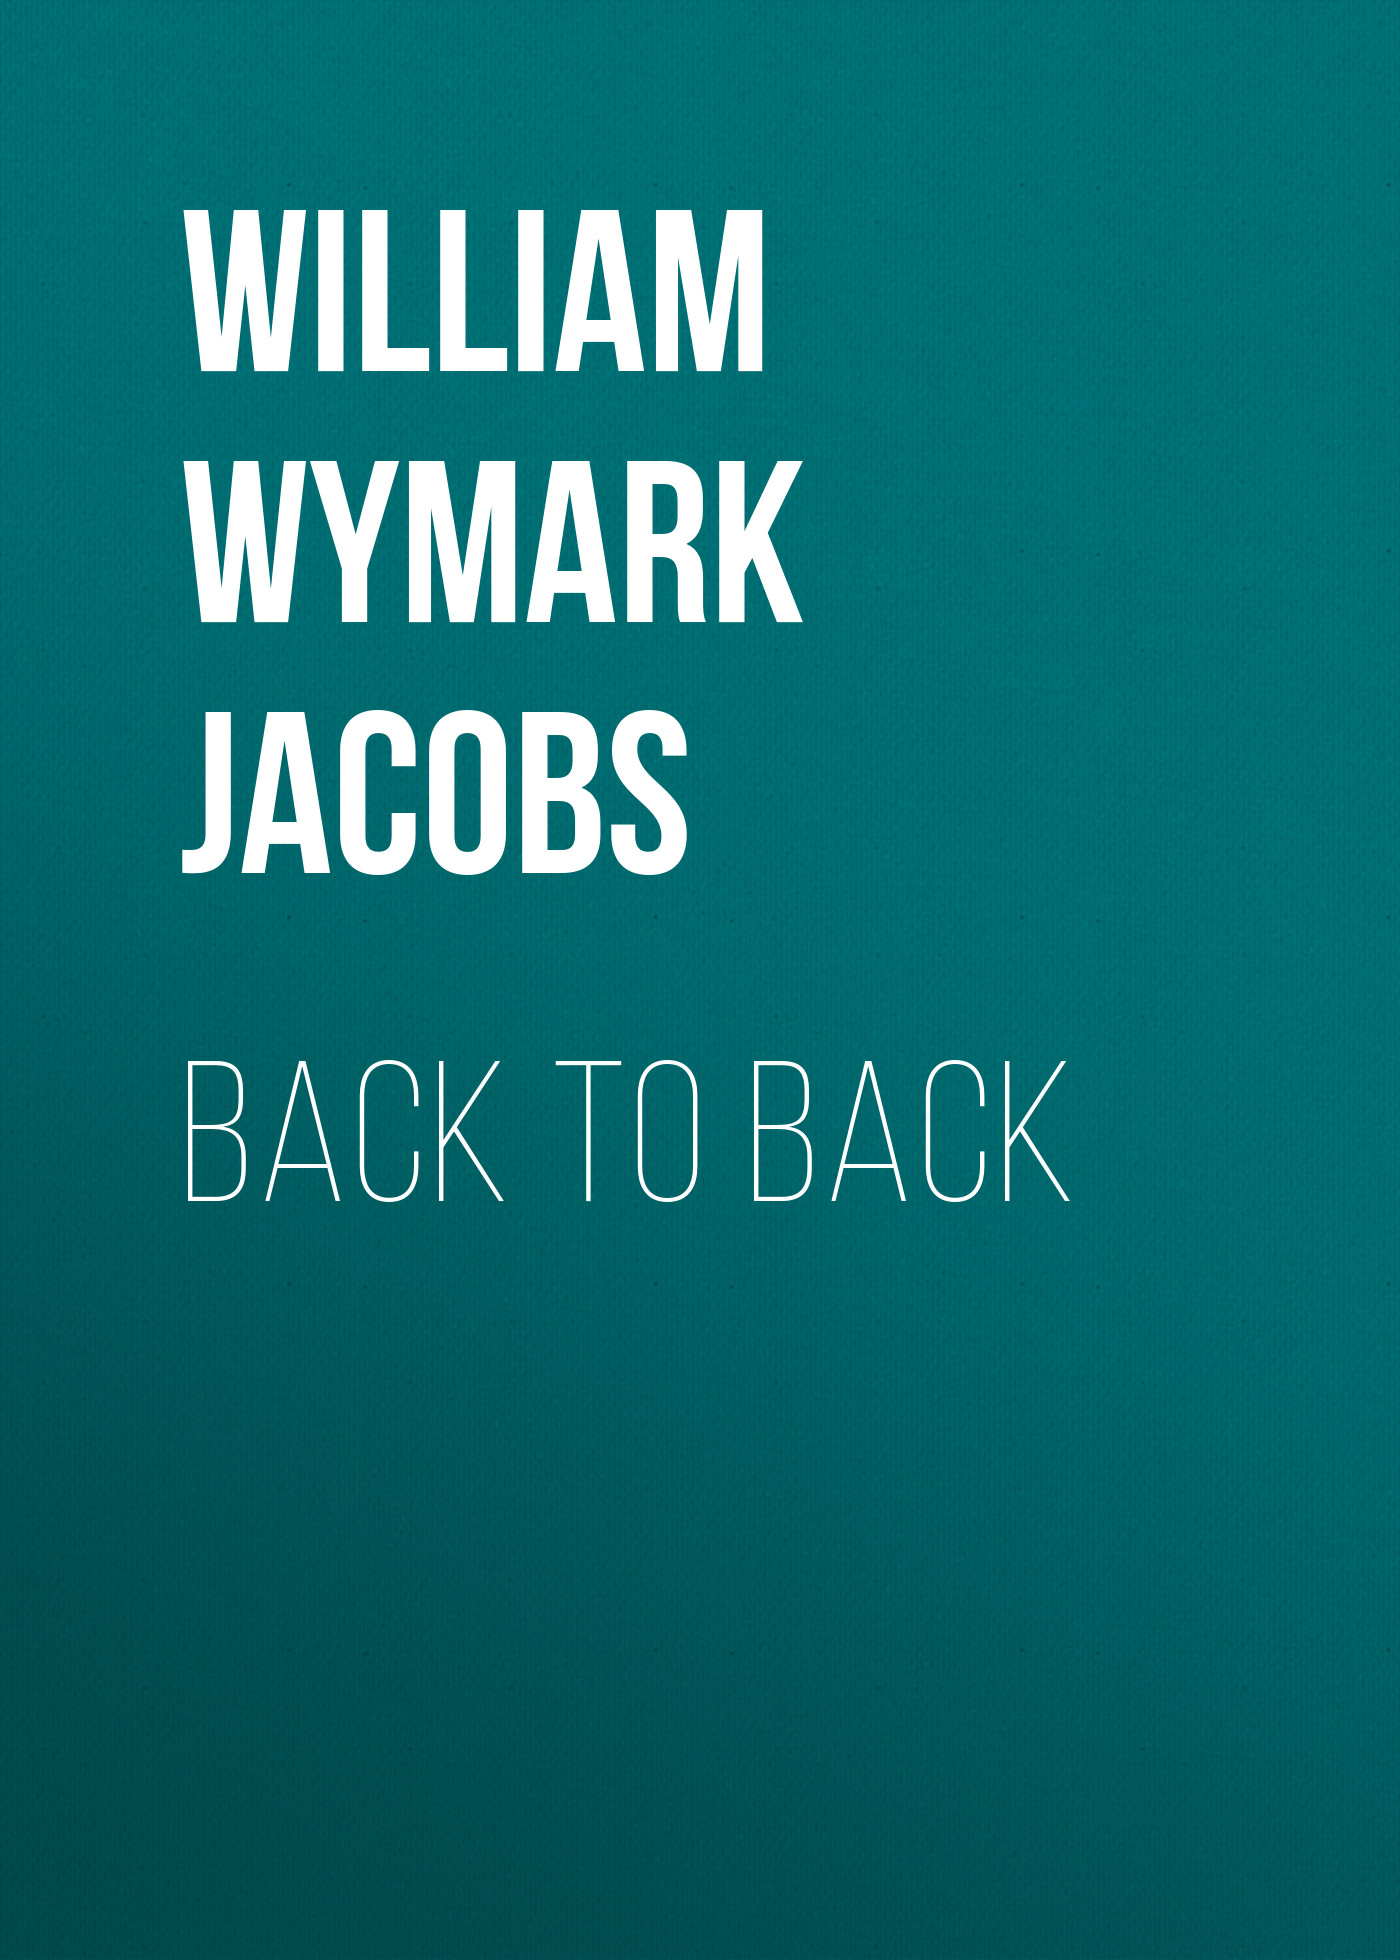 лучшая цена William Wymark Jacobs Back to Back